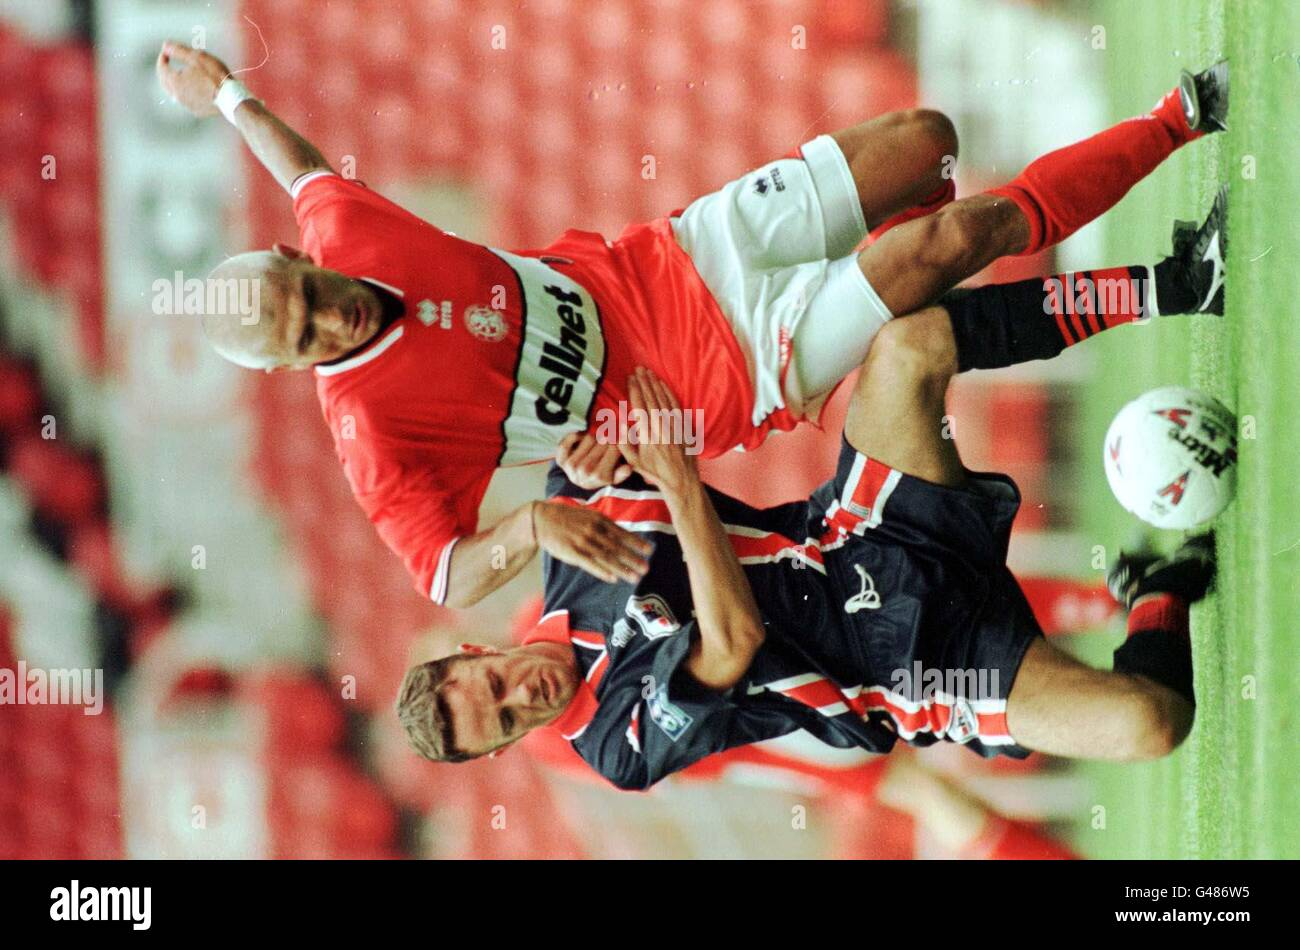 Middlesbrough's Fabrizio Ravanelli gets a taste of whats to come in Division 1as he tangles with yorks Martin Reed Stock Photo